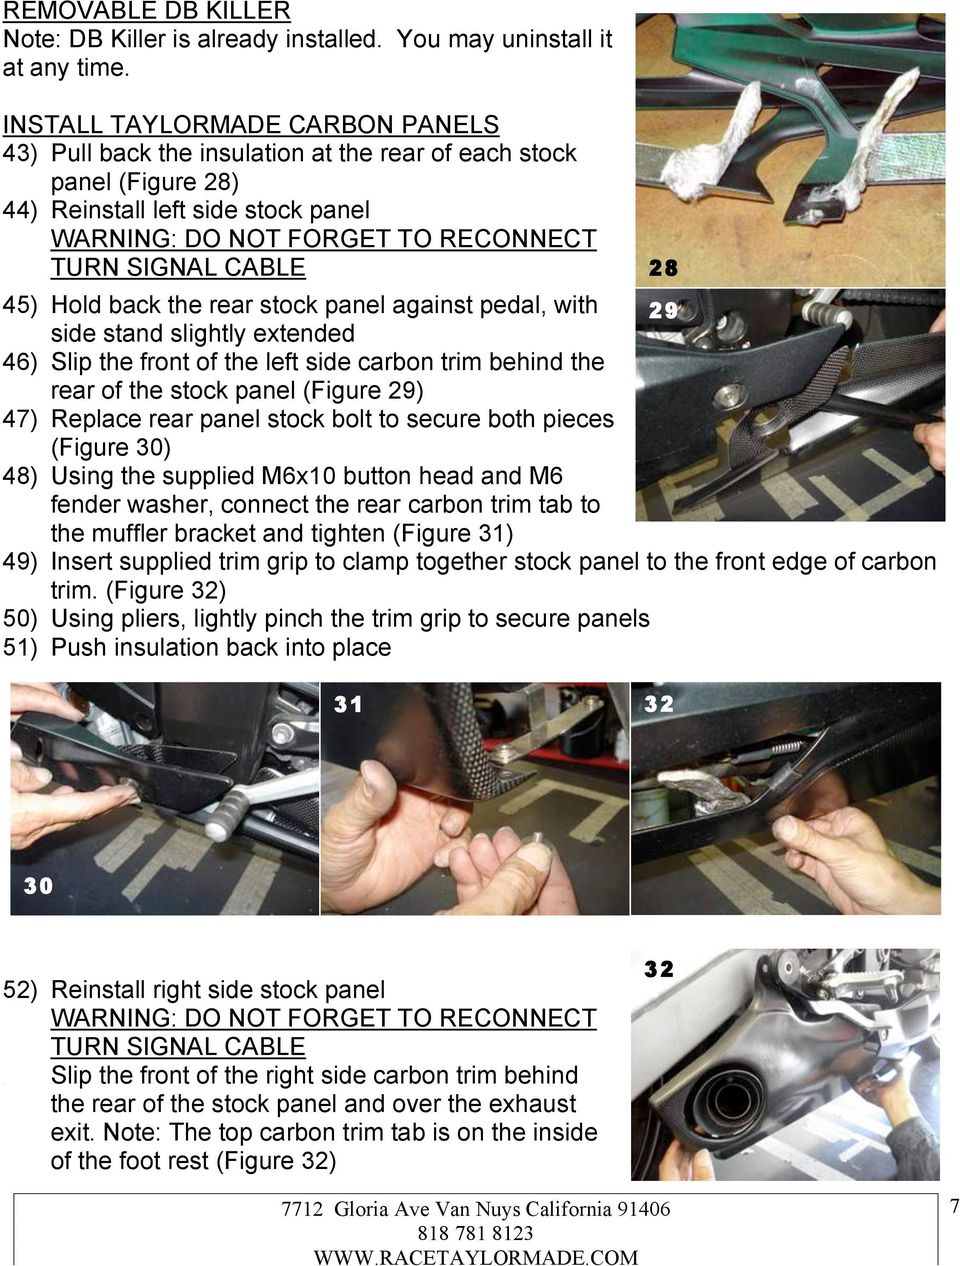 Hold back the rear stock panel against pedal, with 29 side stand slightly extended 46) Slip the front of the left side carbon trim behind the rear of the stock panel (Figure 29) 47) Replace rear